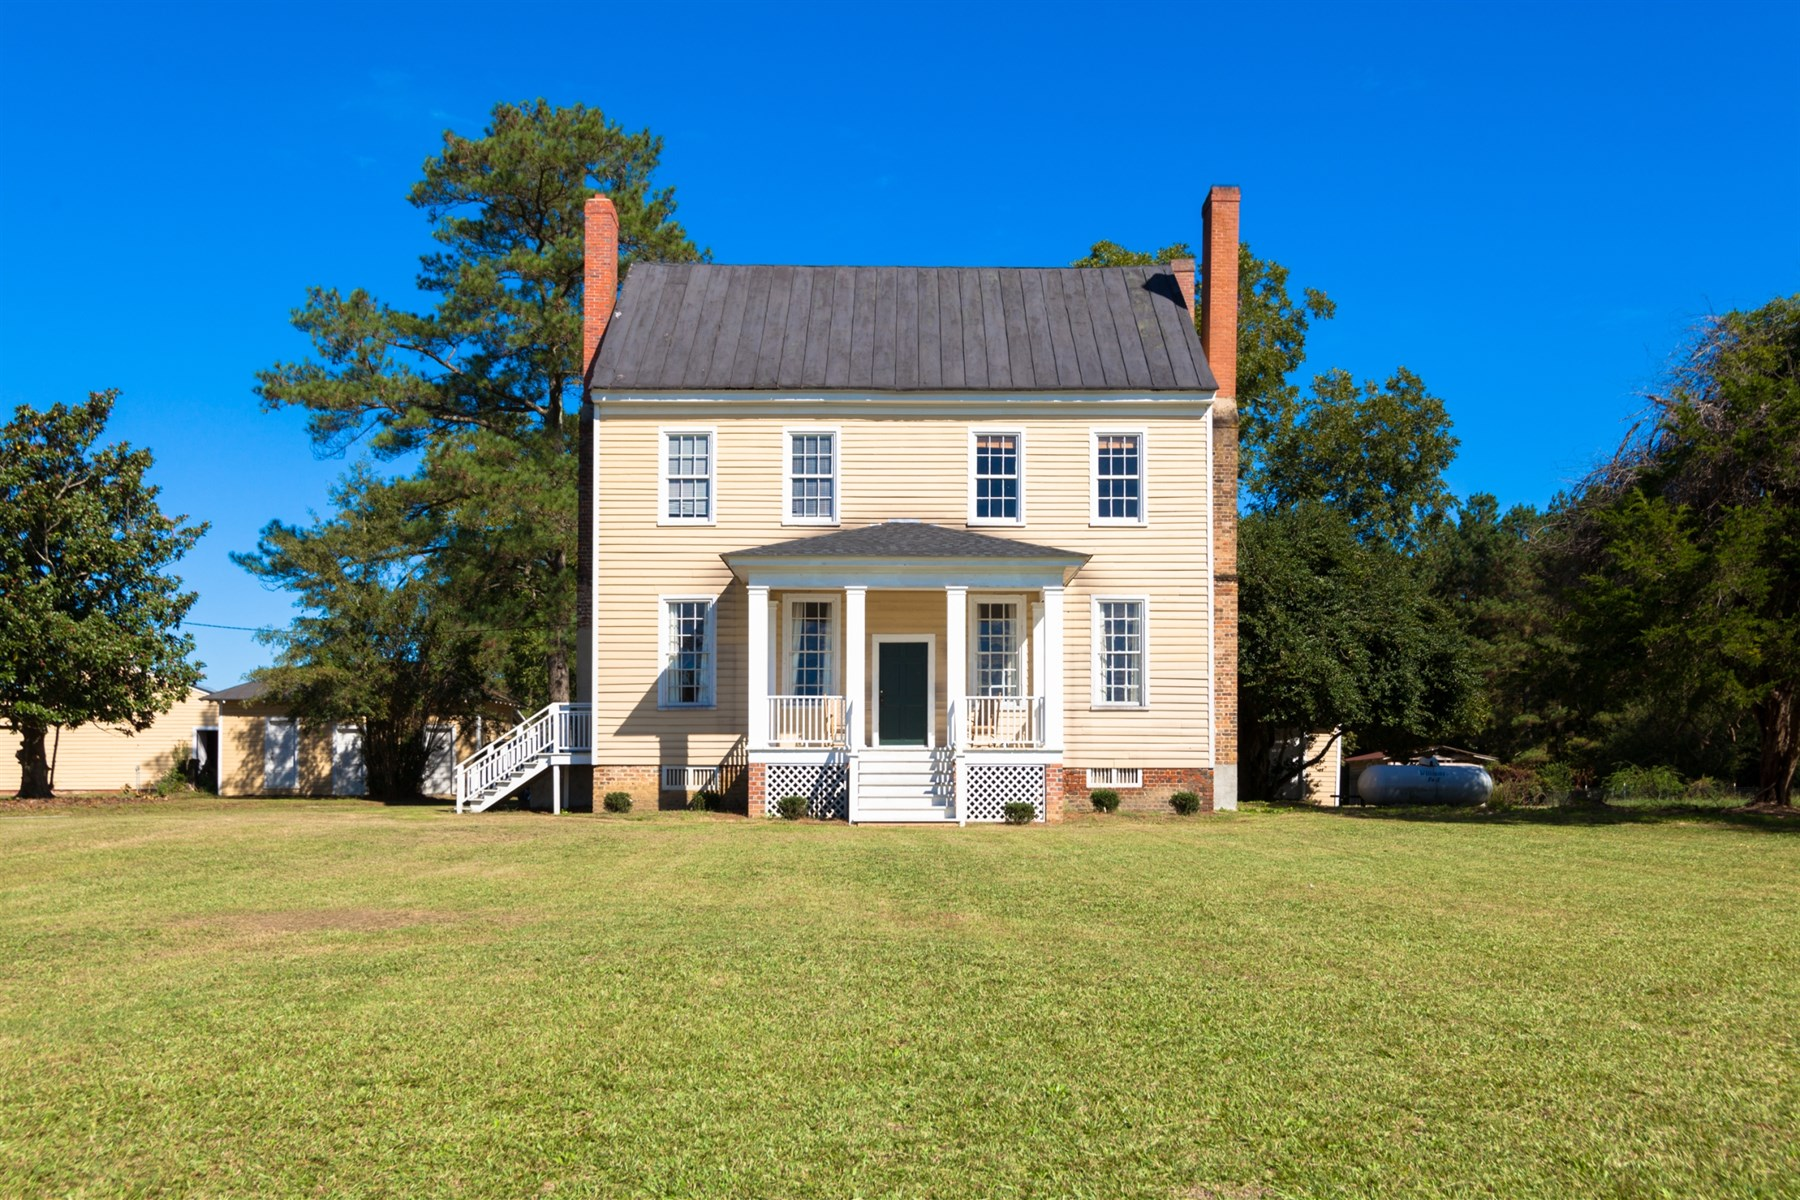 Single Family Home for Sale at Historic Restored Property 784 W Hilliardston Road Nashville, North Carolina 27856 United StatesIn/Around: Chapel Hill, Cary, Raleigh, Durham